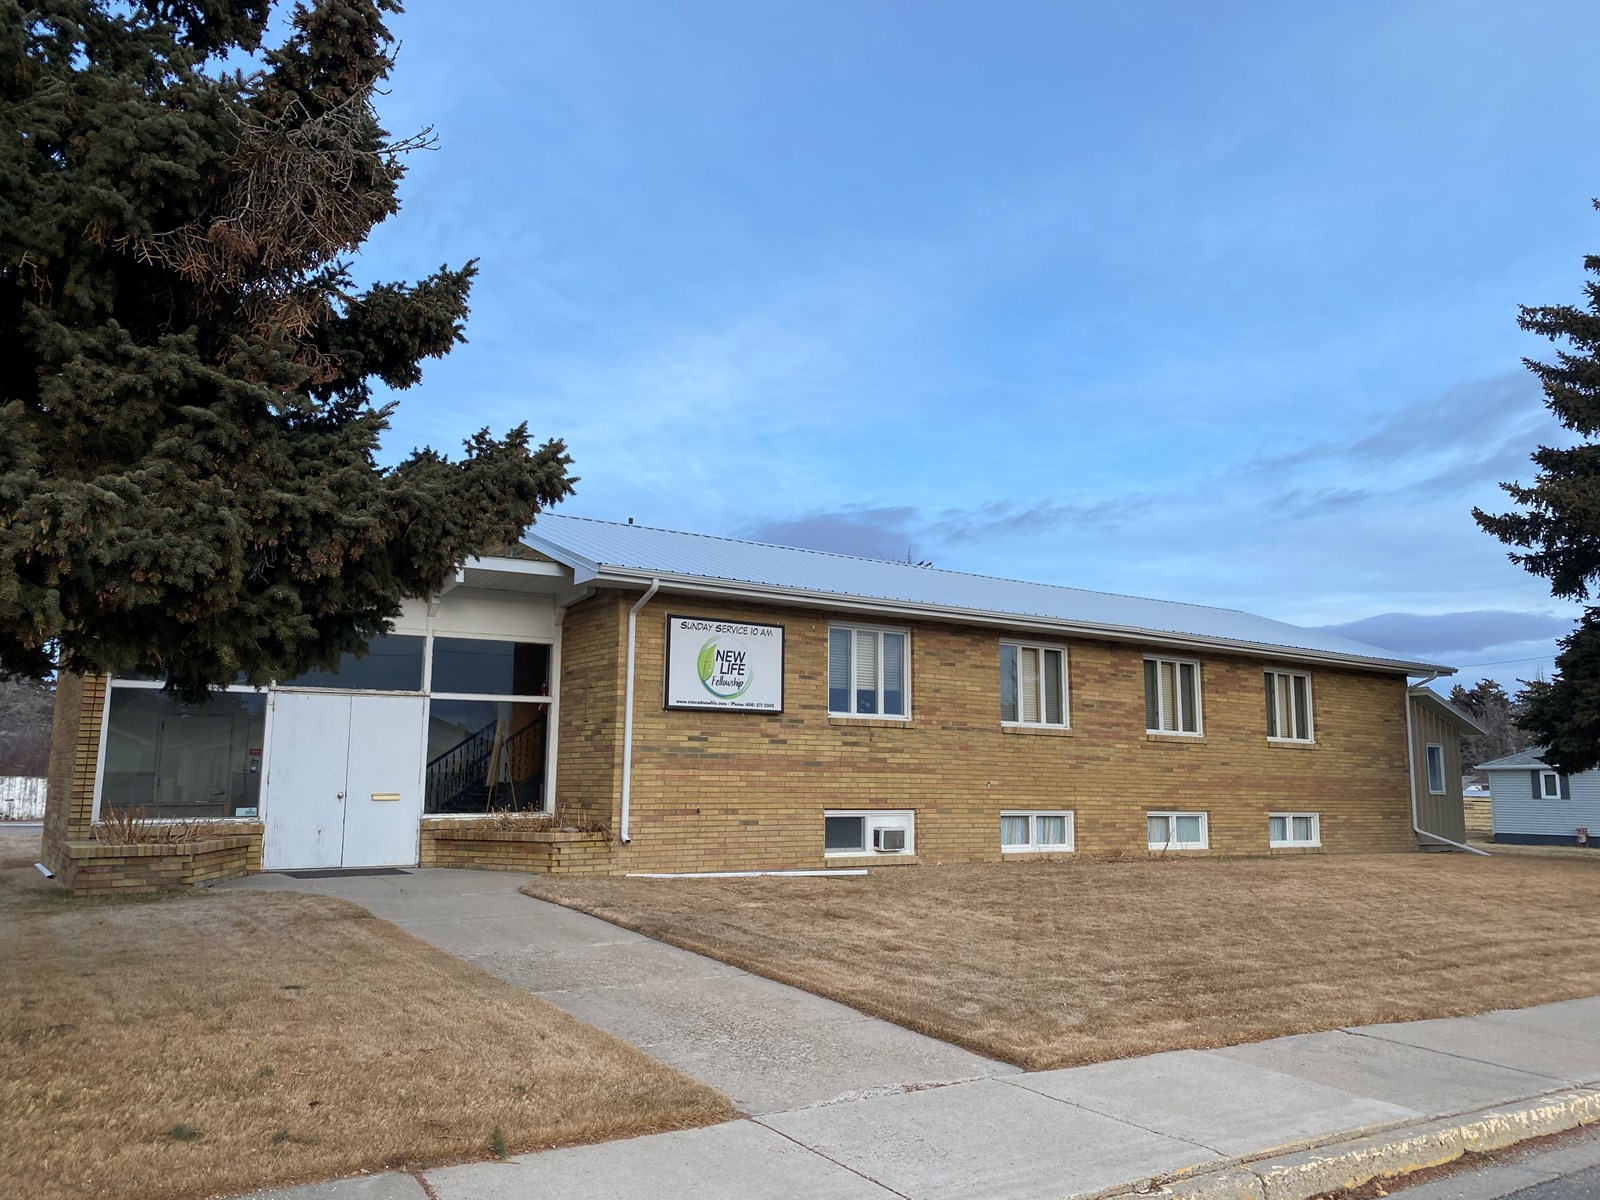 Church/Multi-use Building for sale in Conrad MT